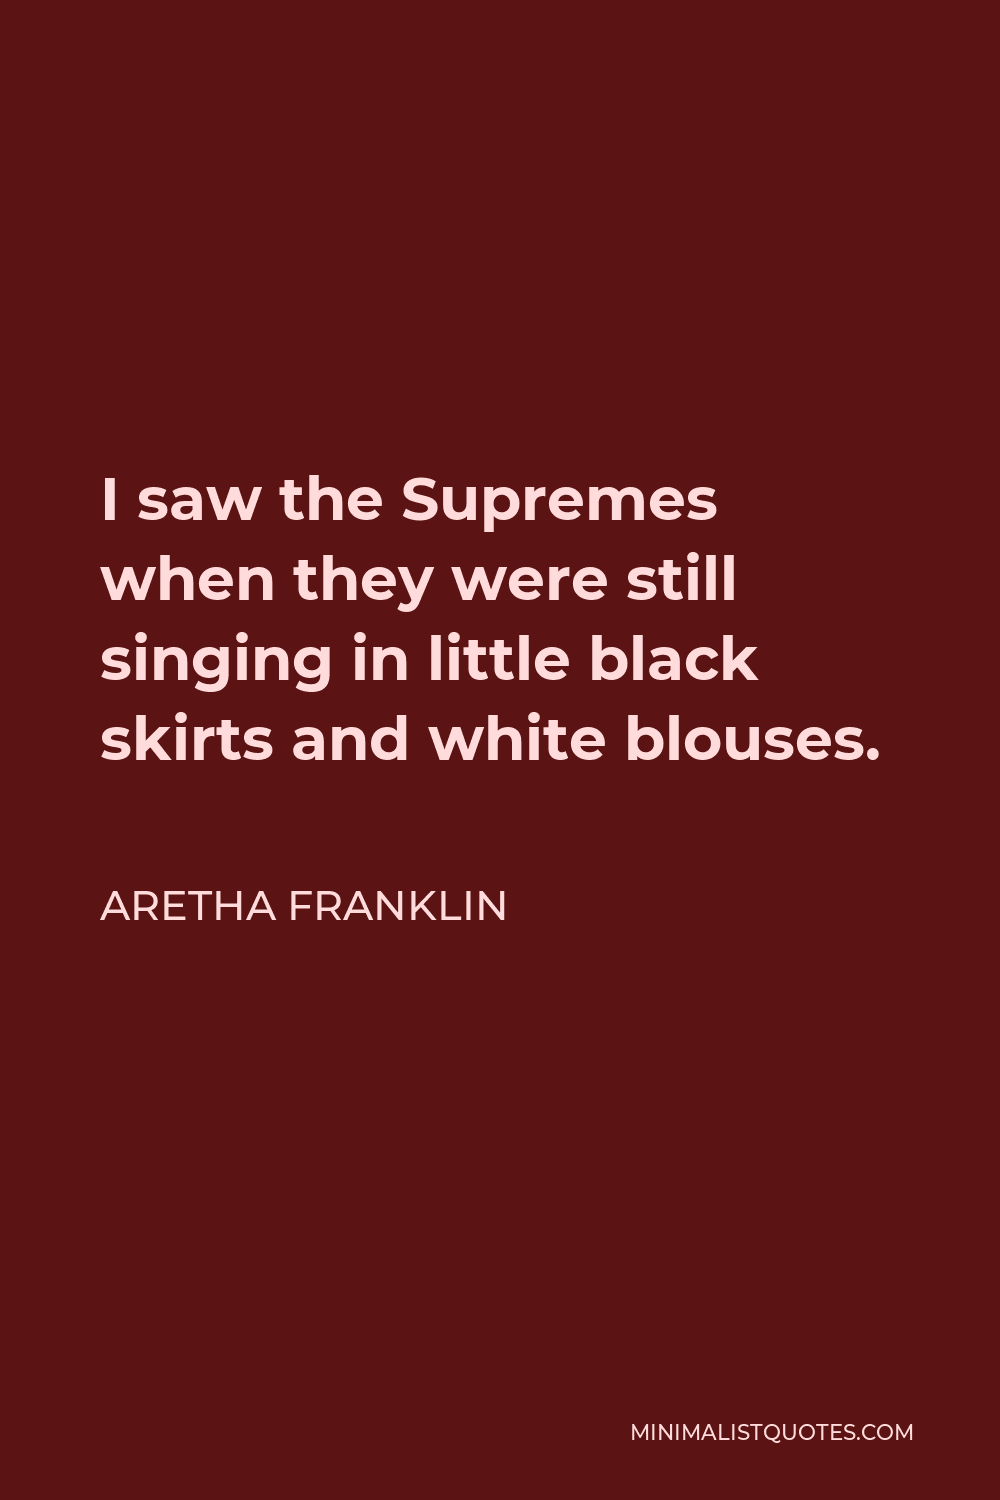 Aretha Franklin Quote - I saw the Supremes when they were still singing in little black skirts and white blouses.